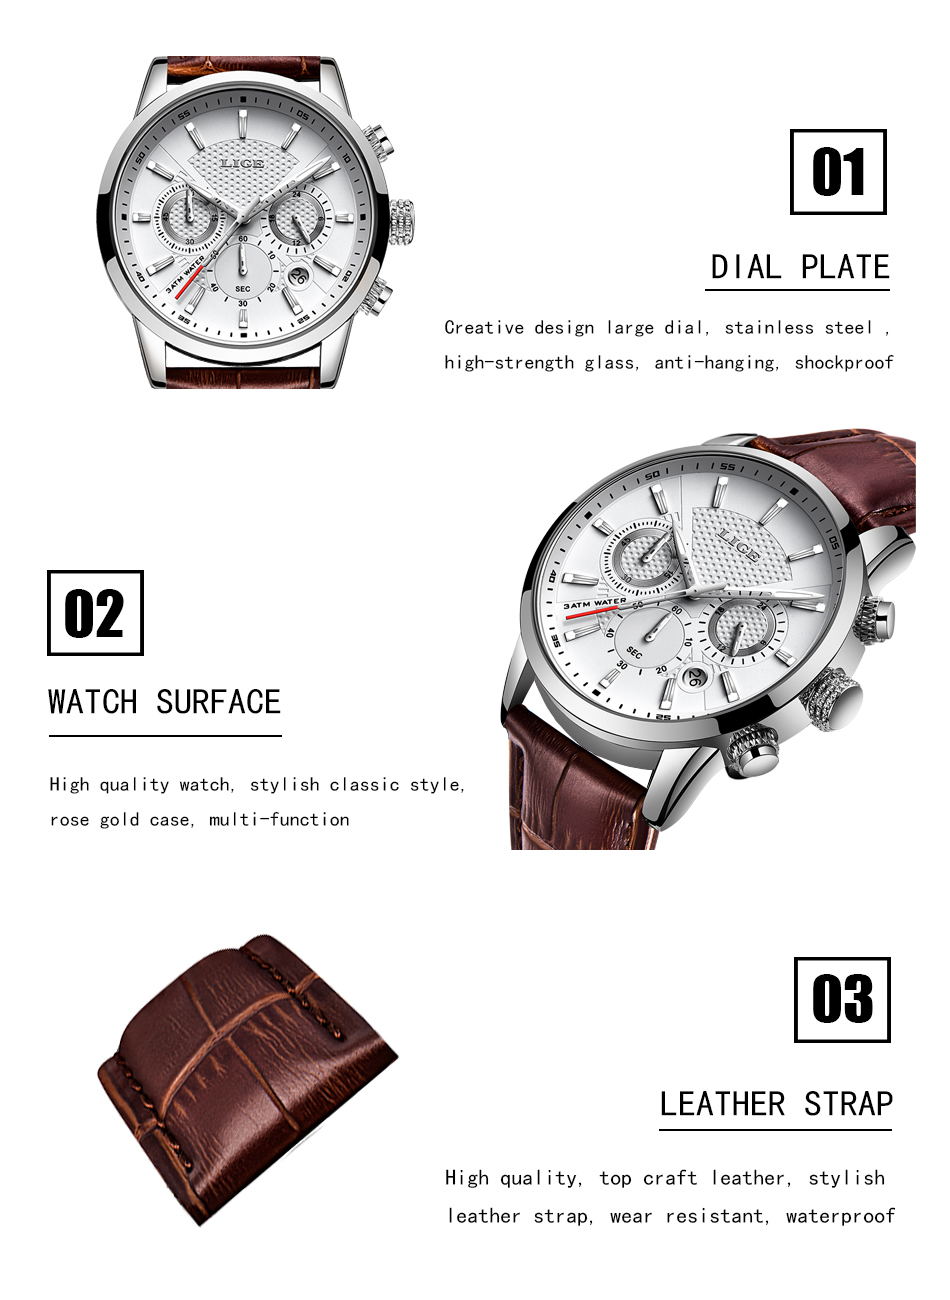 HTB1X2HLVQzoK1RjSZFlq6yi4VXam - LIGE Watch Men Fashion Sport Quartz Clock Mens Watches Top Brand Luxury Leather Business Waterproof Watch Relogio Masculino